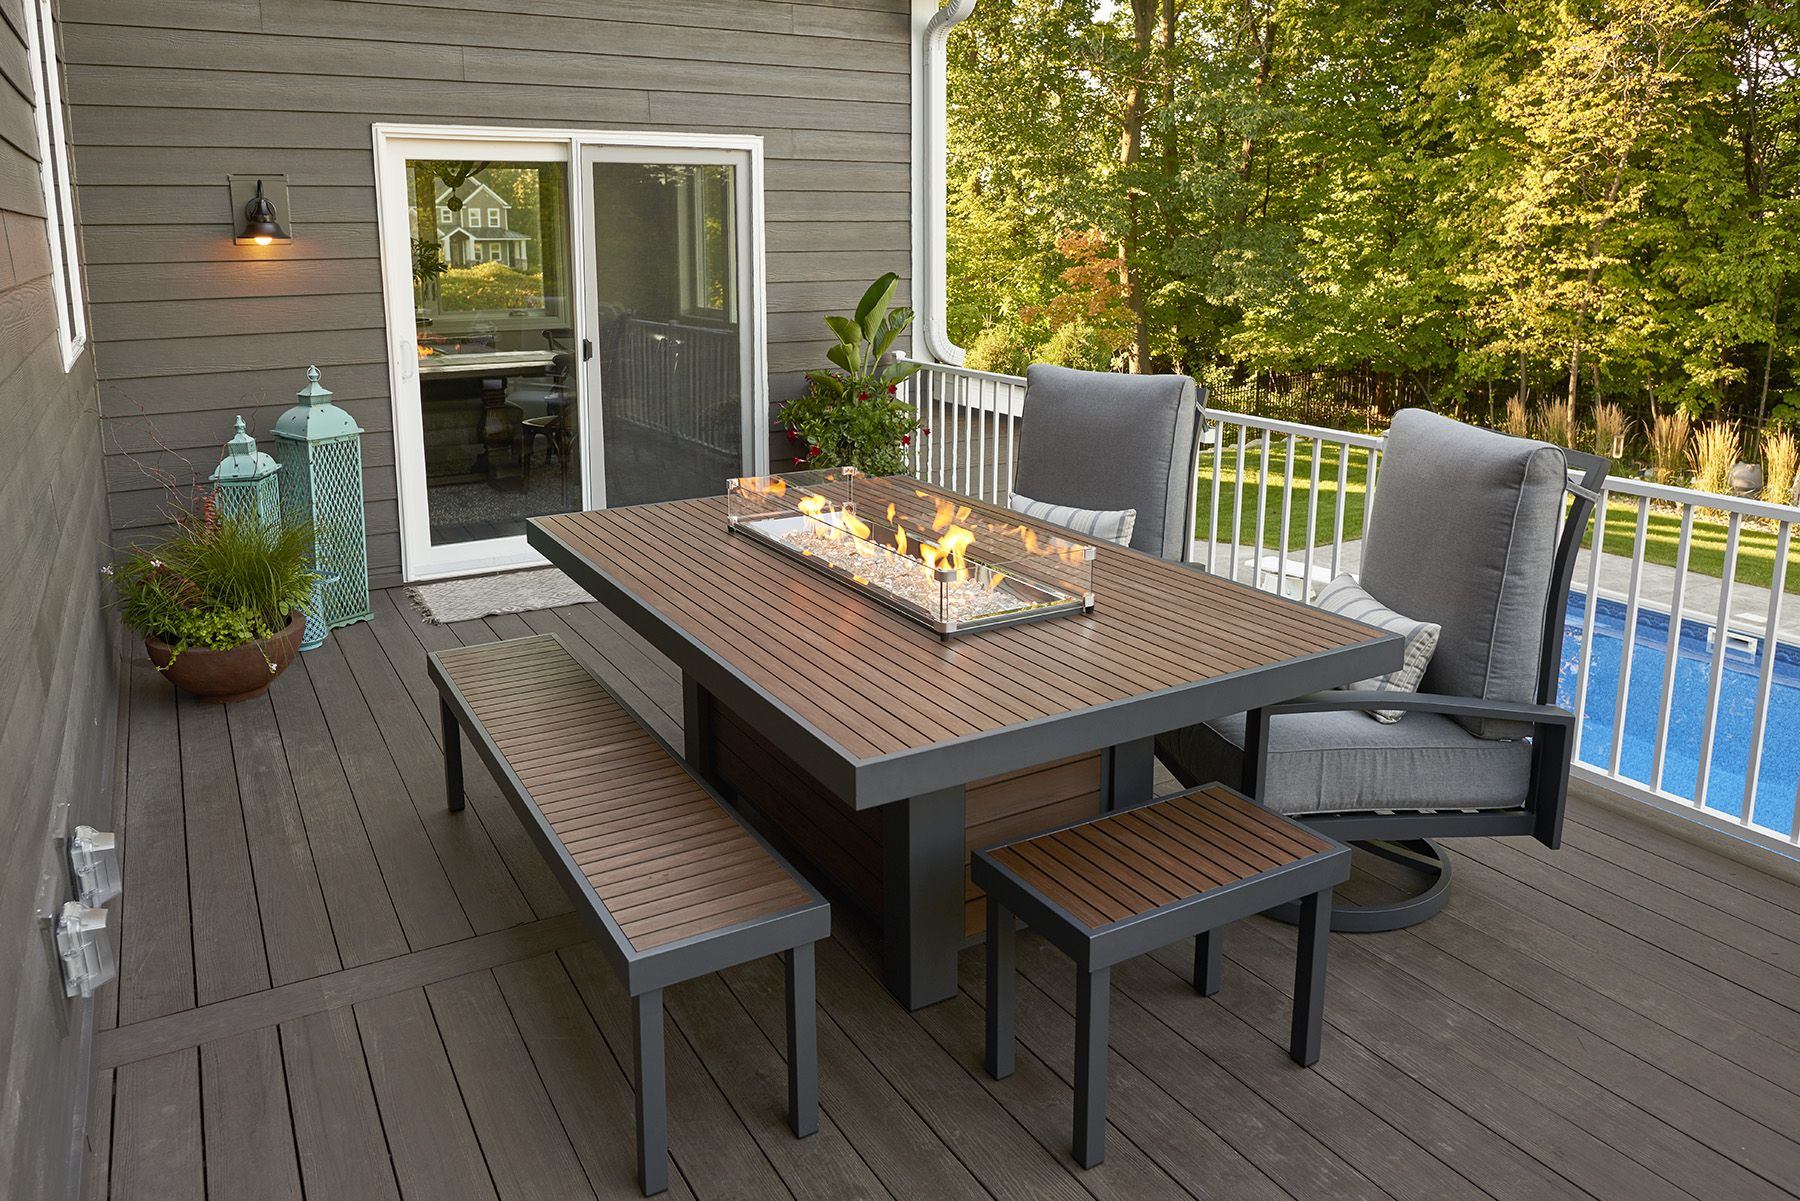 The Kenwood 1242 Gas Fire Pit Dining Table Outdoor Living Re Imagined With This Gorgeous Gas Fire Table Gas Firepit Fire Pit Table Gas Fire Pit Table Modern outdoor fire dining table